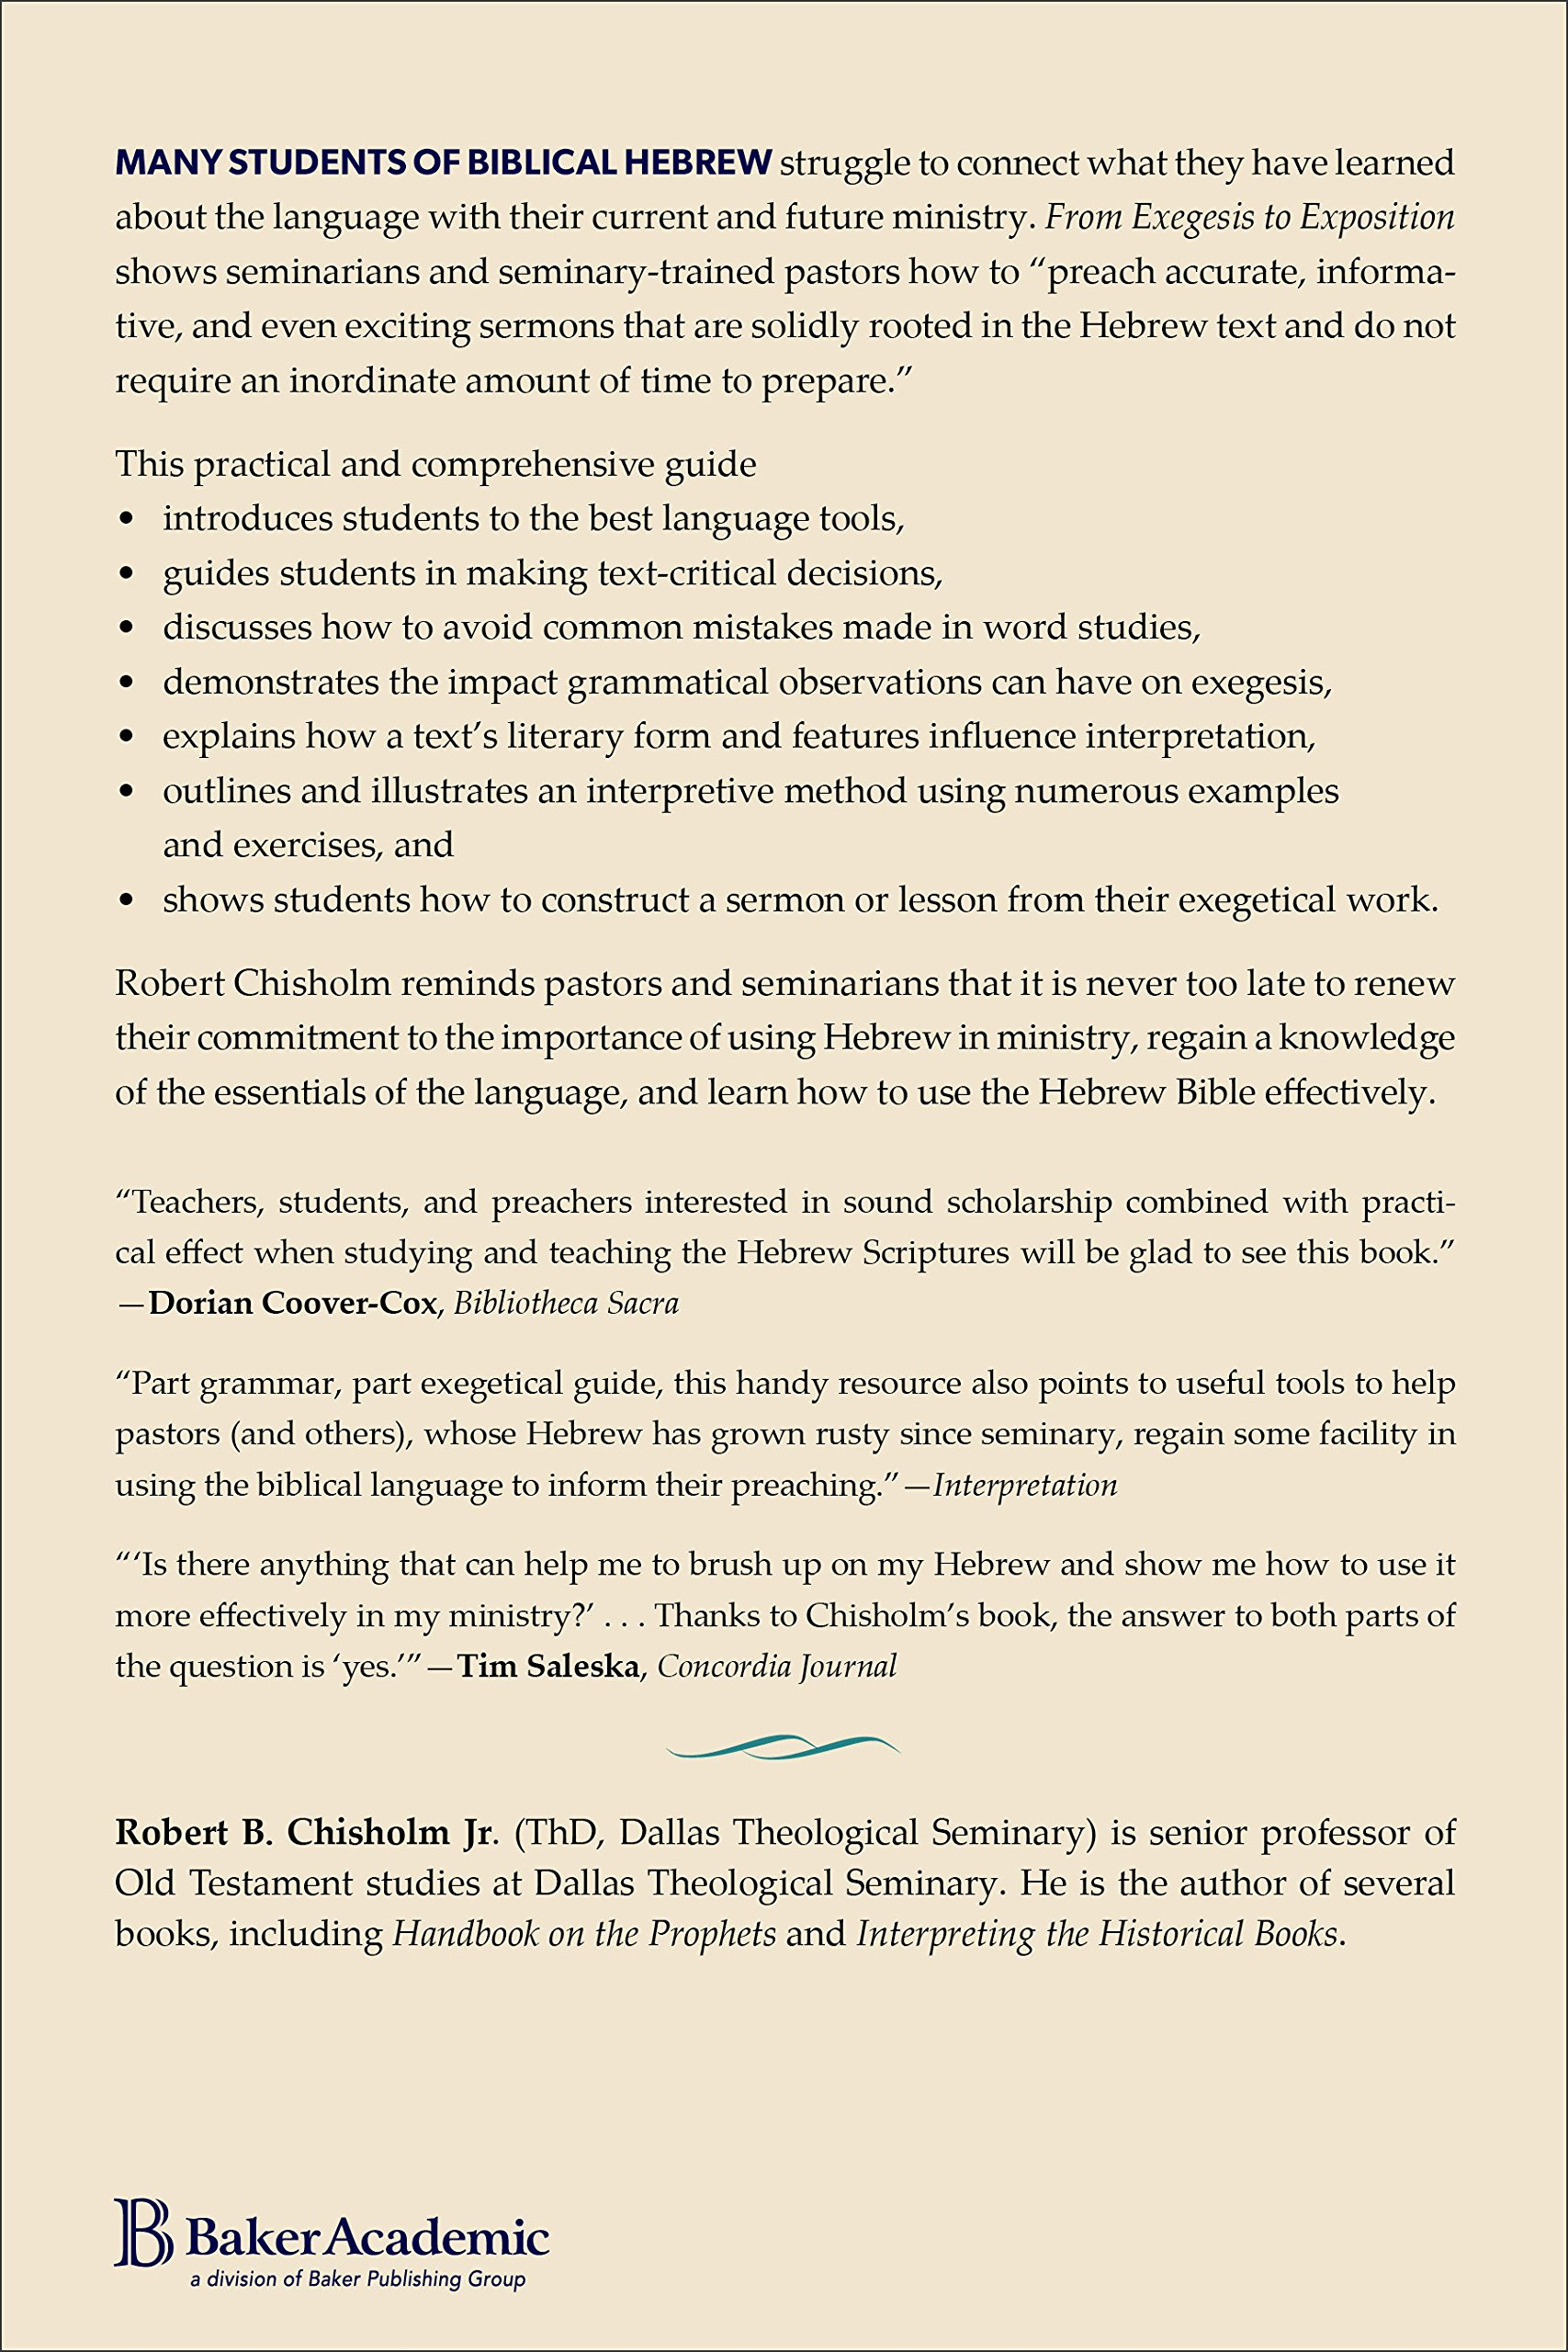 from exegesis to exposition a practical guide to using biblical